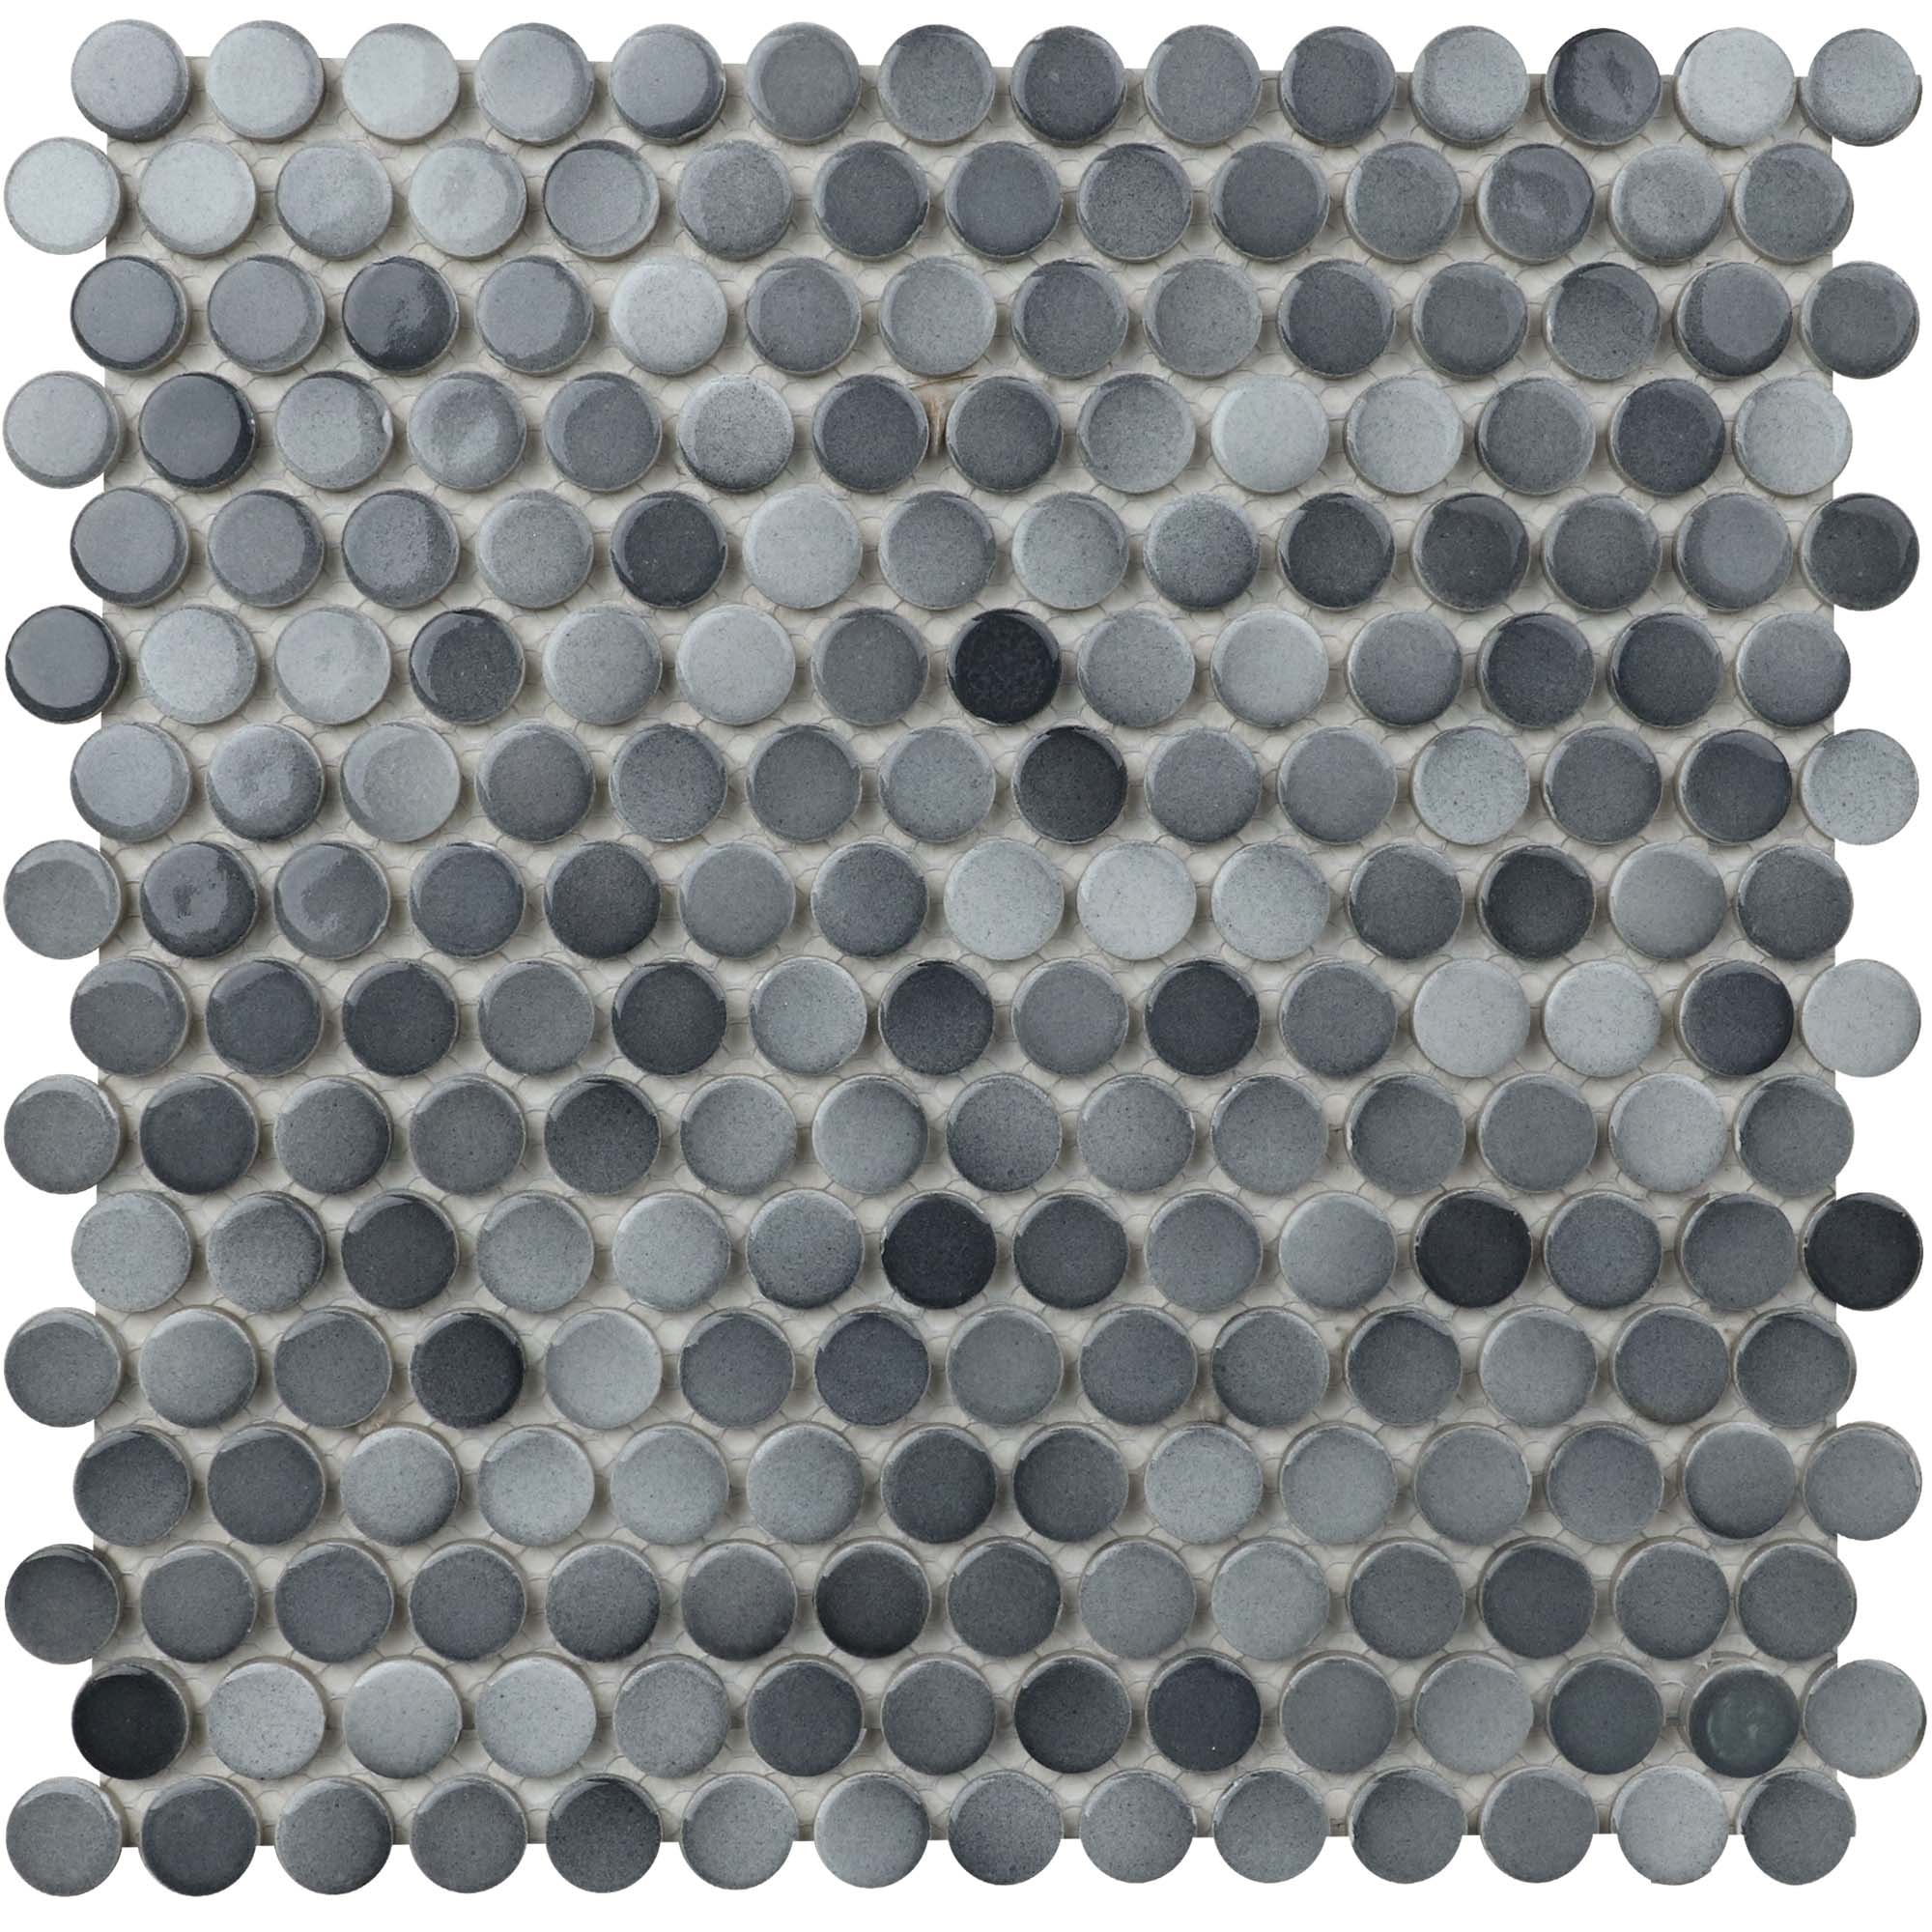 """11.6 x 11.4 x 0.24 inches / Glossy Retro 0.8"""" Penny Round Porcelain Glossy Wall Tile in Gray 0"""